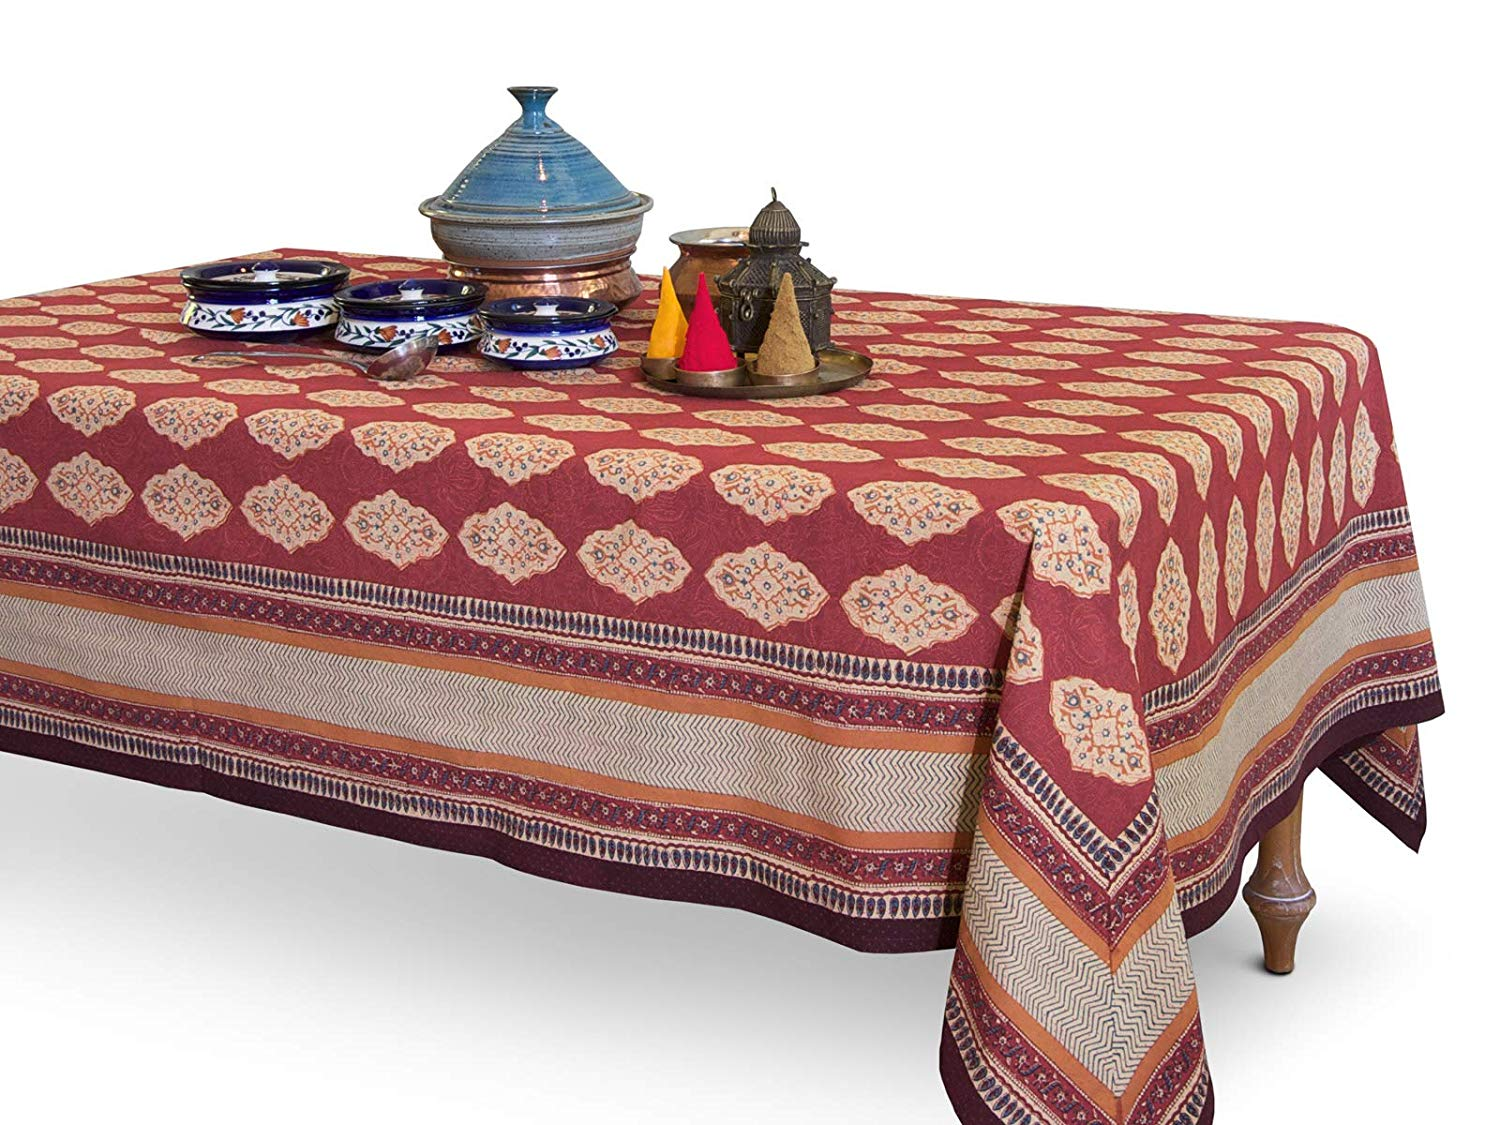 saffron marigold rectangle route cotton round accent tablecloth red orange moroccan print bohemian table cover home kitchen southern enterprises mirage mirrored console silver